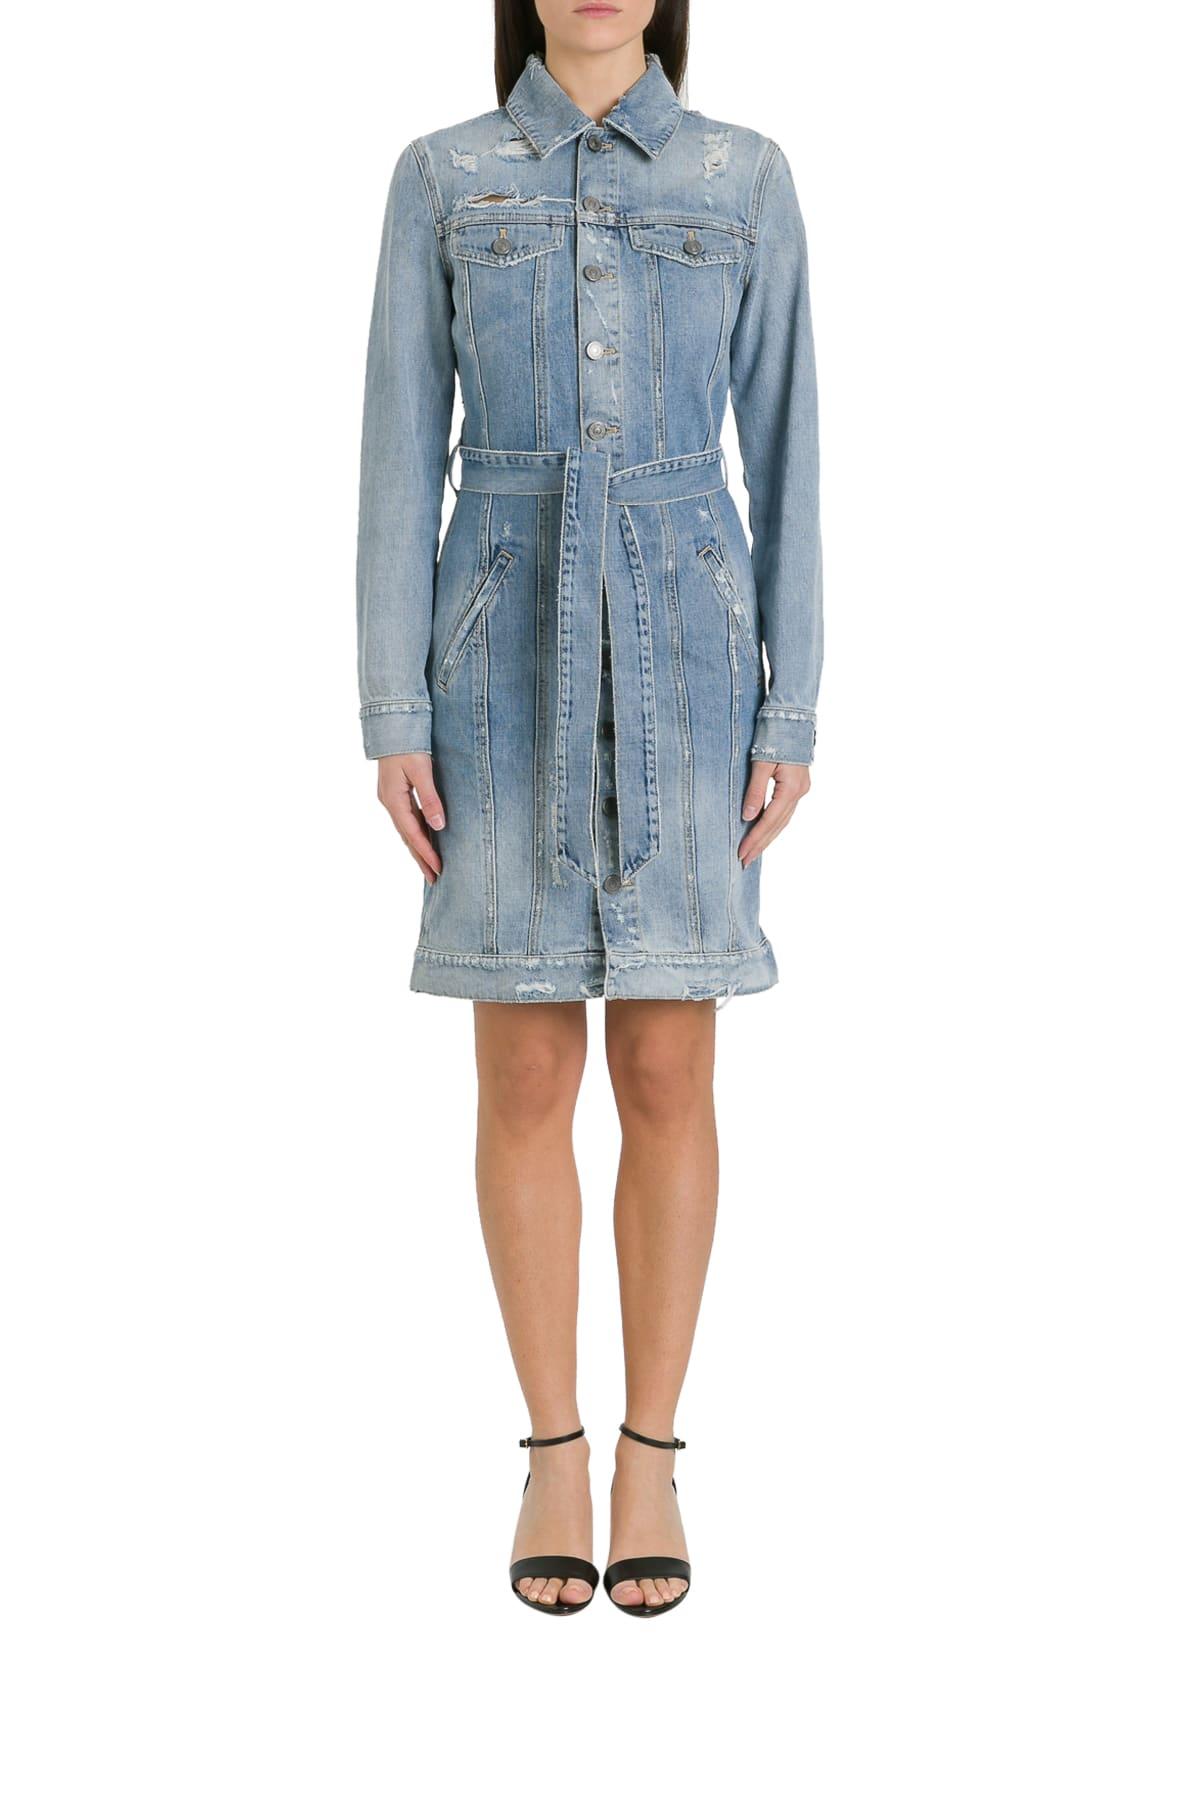 Buy Givenchy Destroyed Denim Pinafore Dress With Belt online, shop Givenchy with free shipping